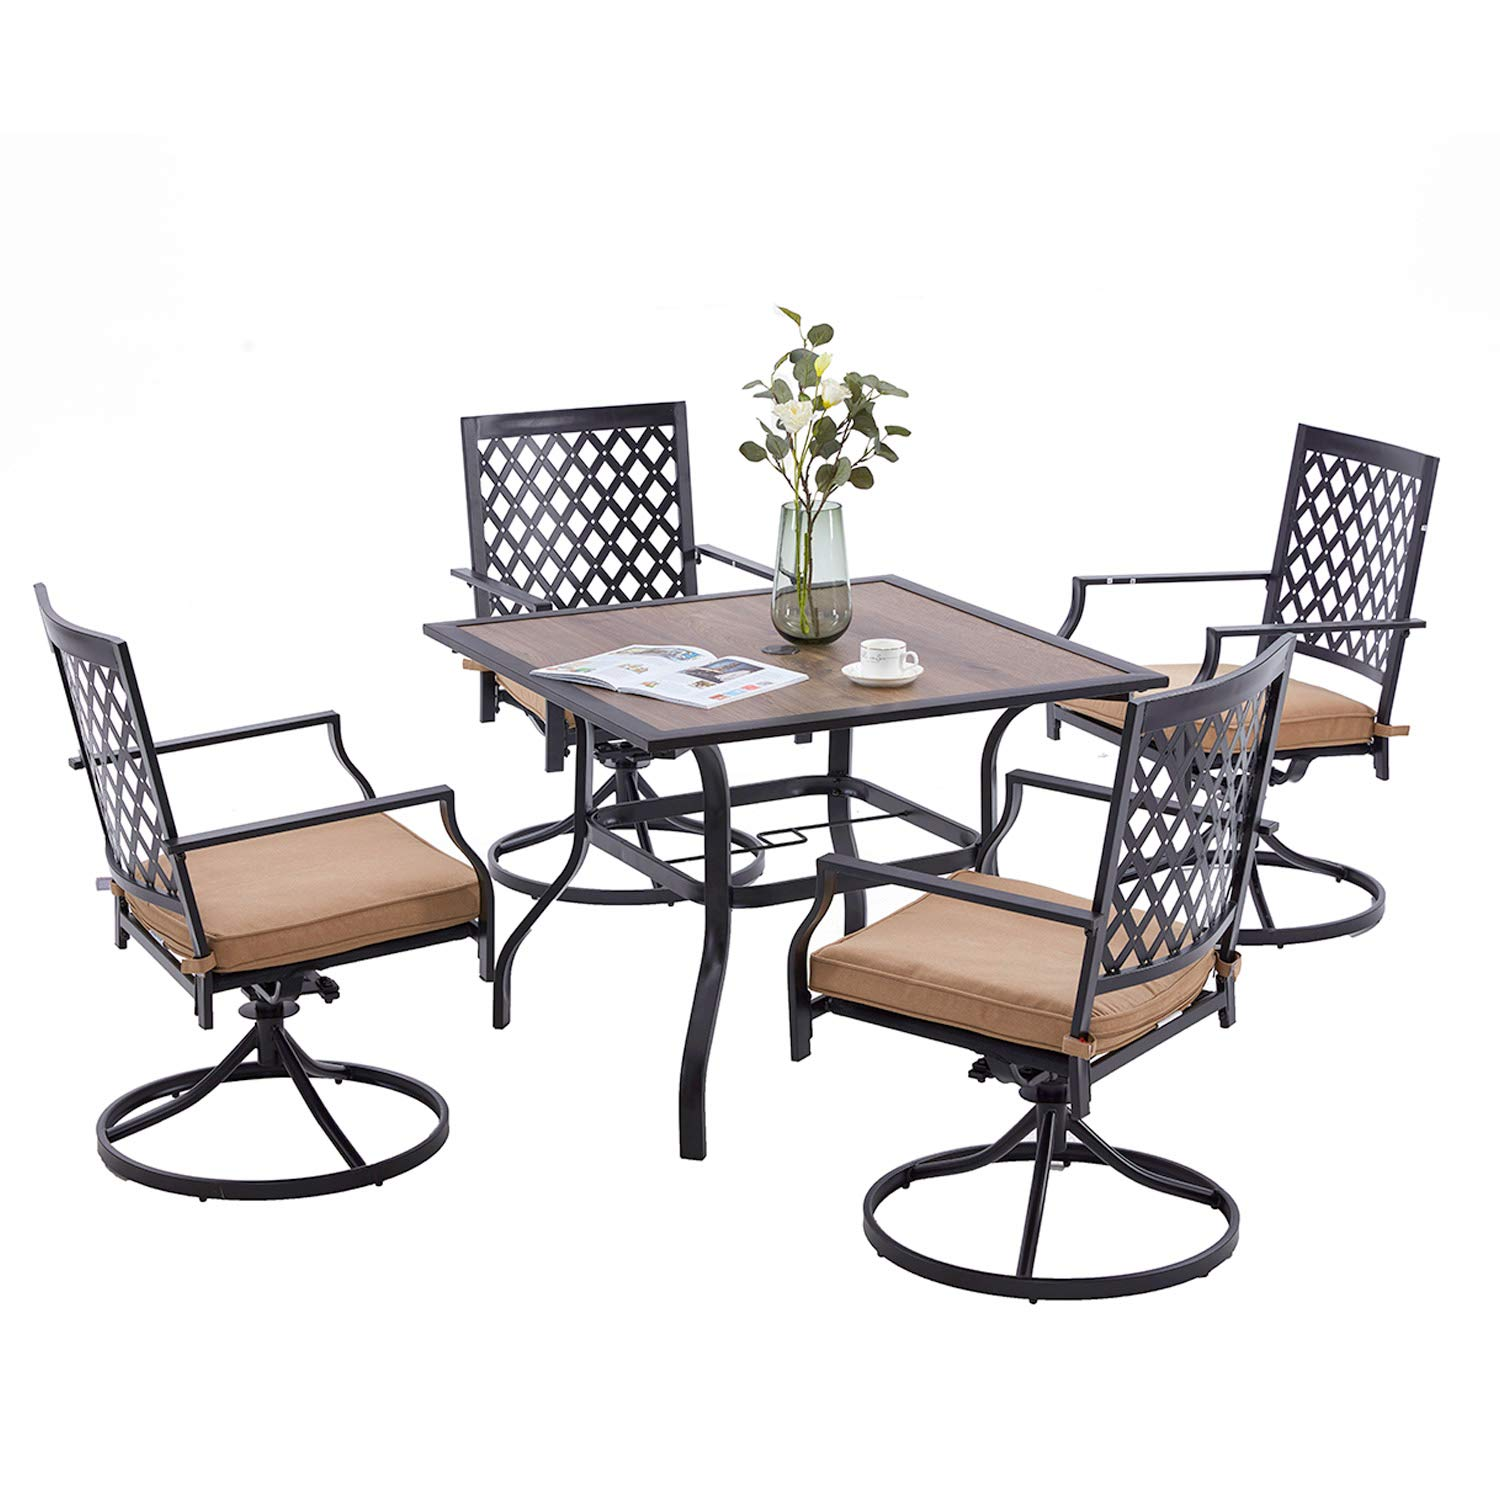 VICLLAX 5 Piece Patio Dining Set, 4 Swivel Outdoor Dining Chairs with Cushion and 1 Square Patio Dining Table, Walnut